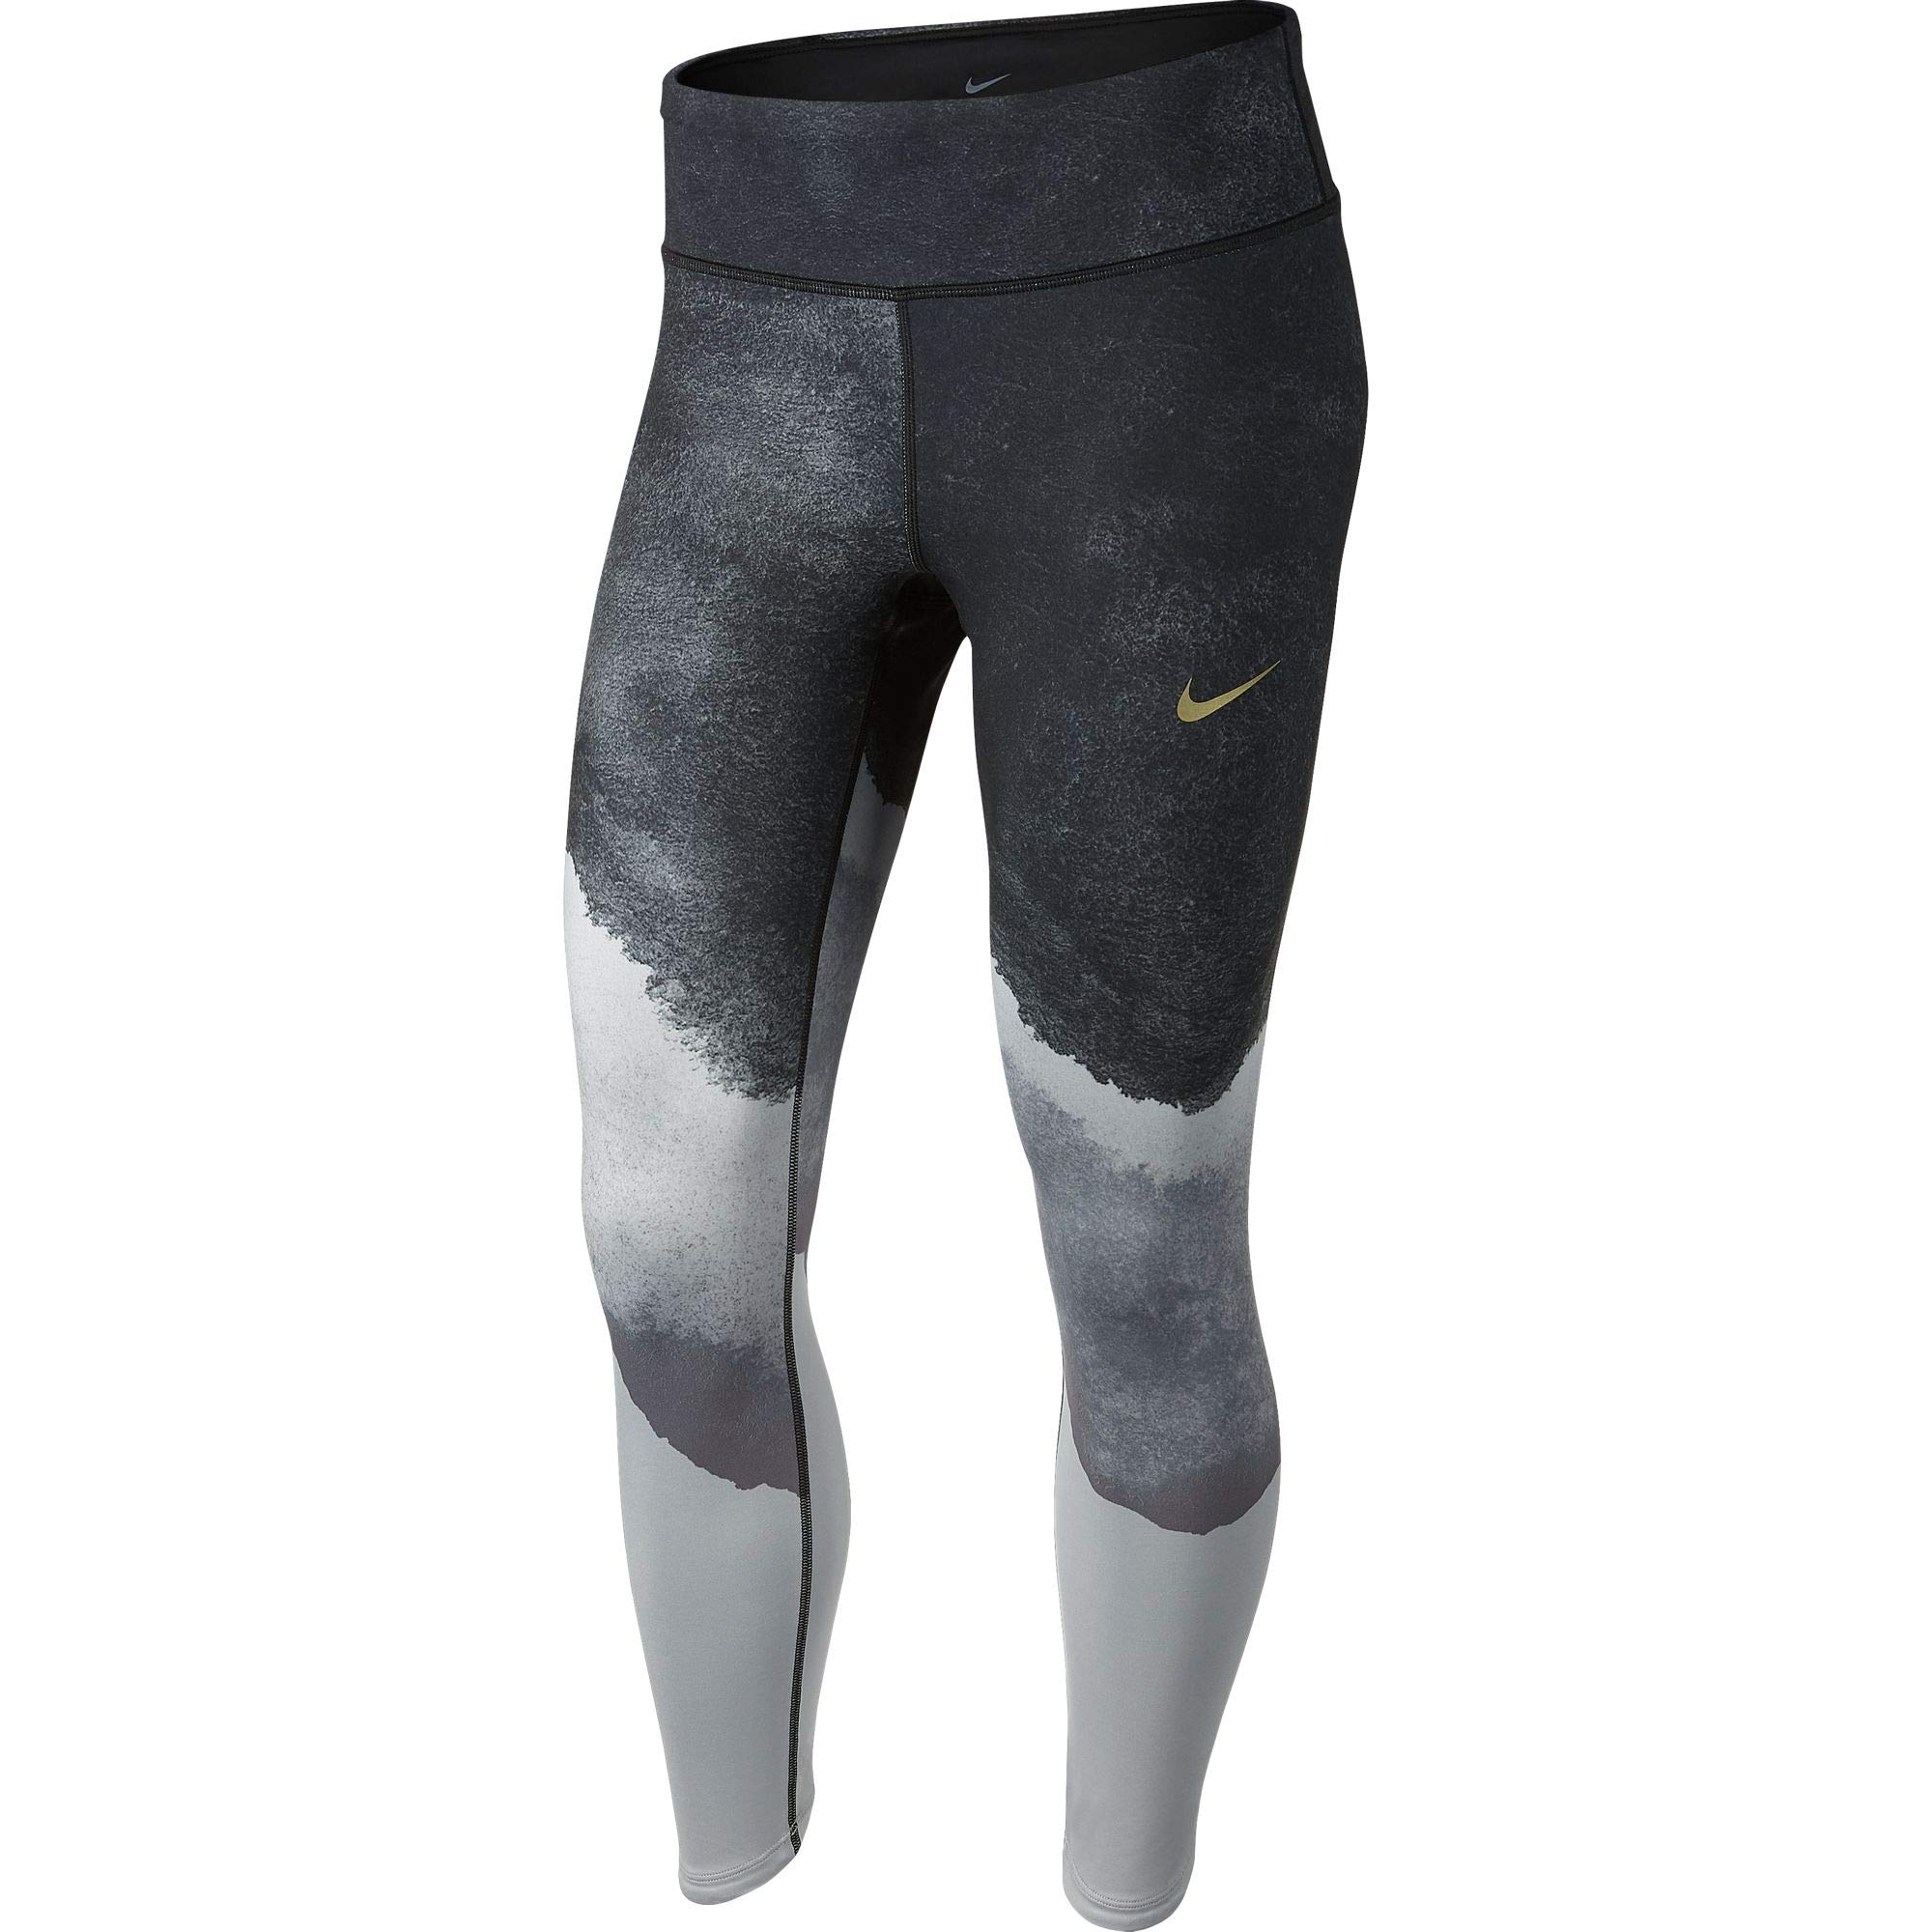 Nike Women's Epic Lux Watercolor Running Tights Wolf Grey/Cool Grey/Black/Reflect Gold S by Nike (Image #1)